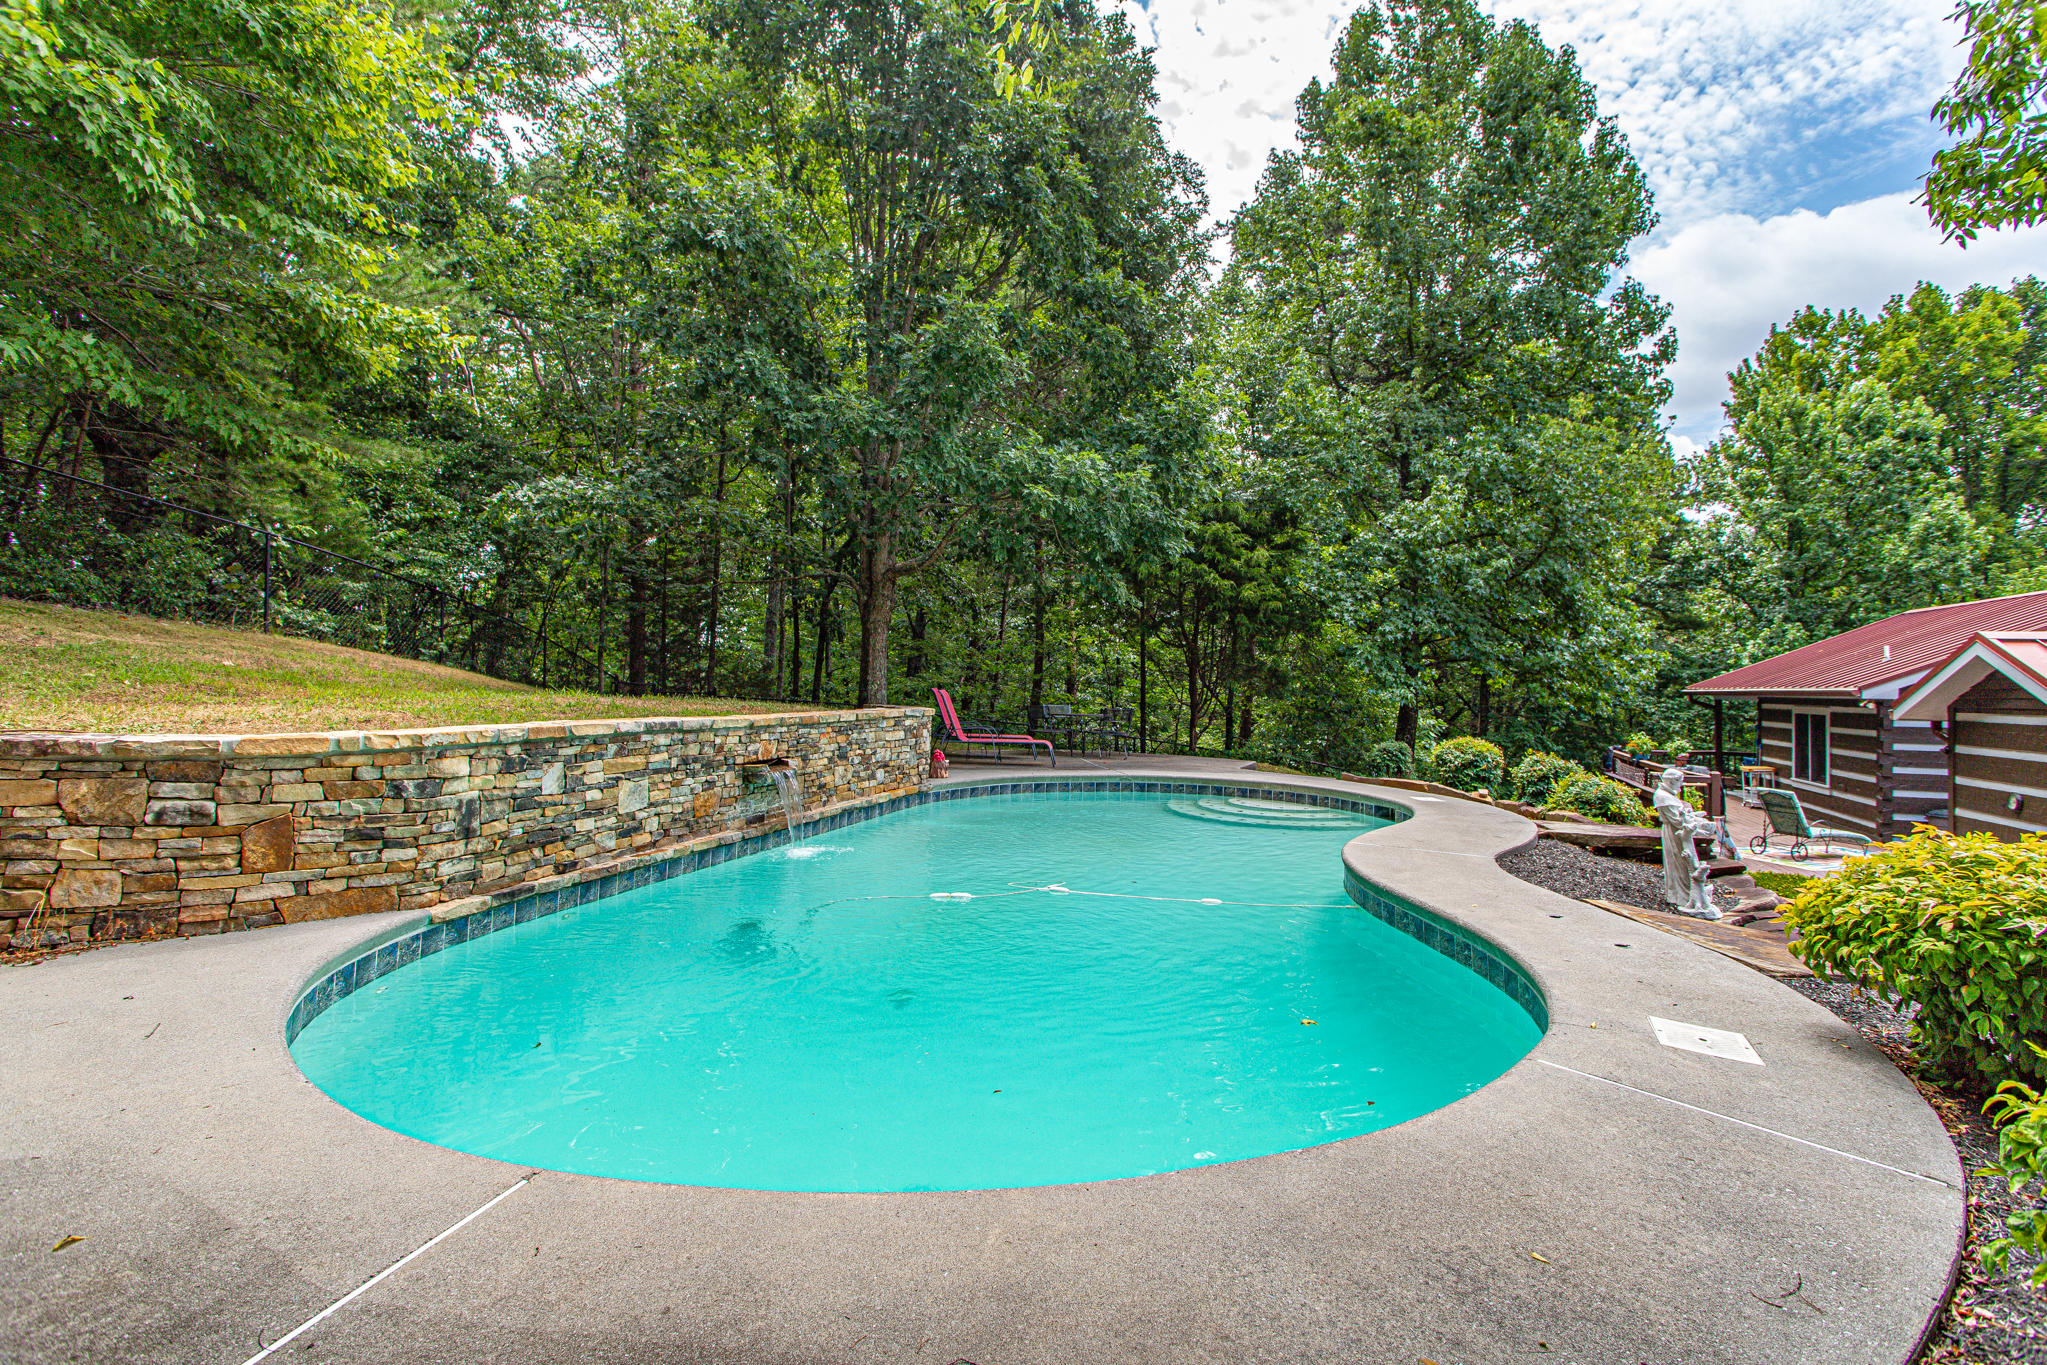 2004 Thompson, Knoxville, Tennessee, United States 37932, 3 Bedrooms Bedrooms, ,3 BathroomsBathrooms,Single Family,For Sale,Thompson,1125201